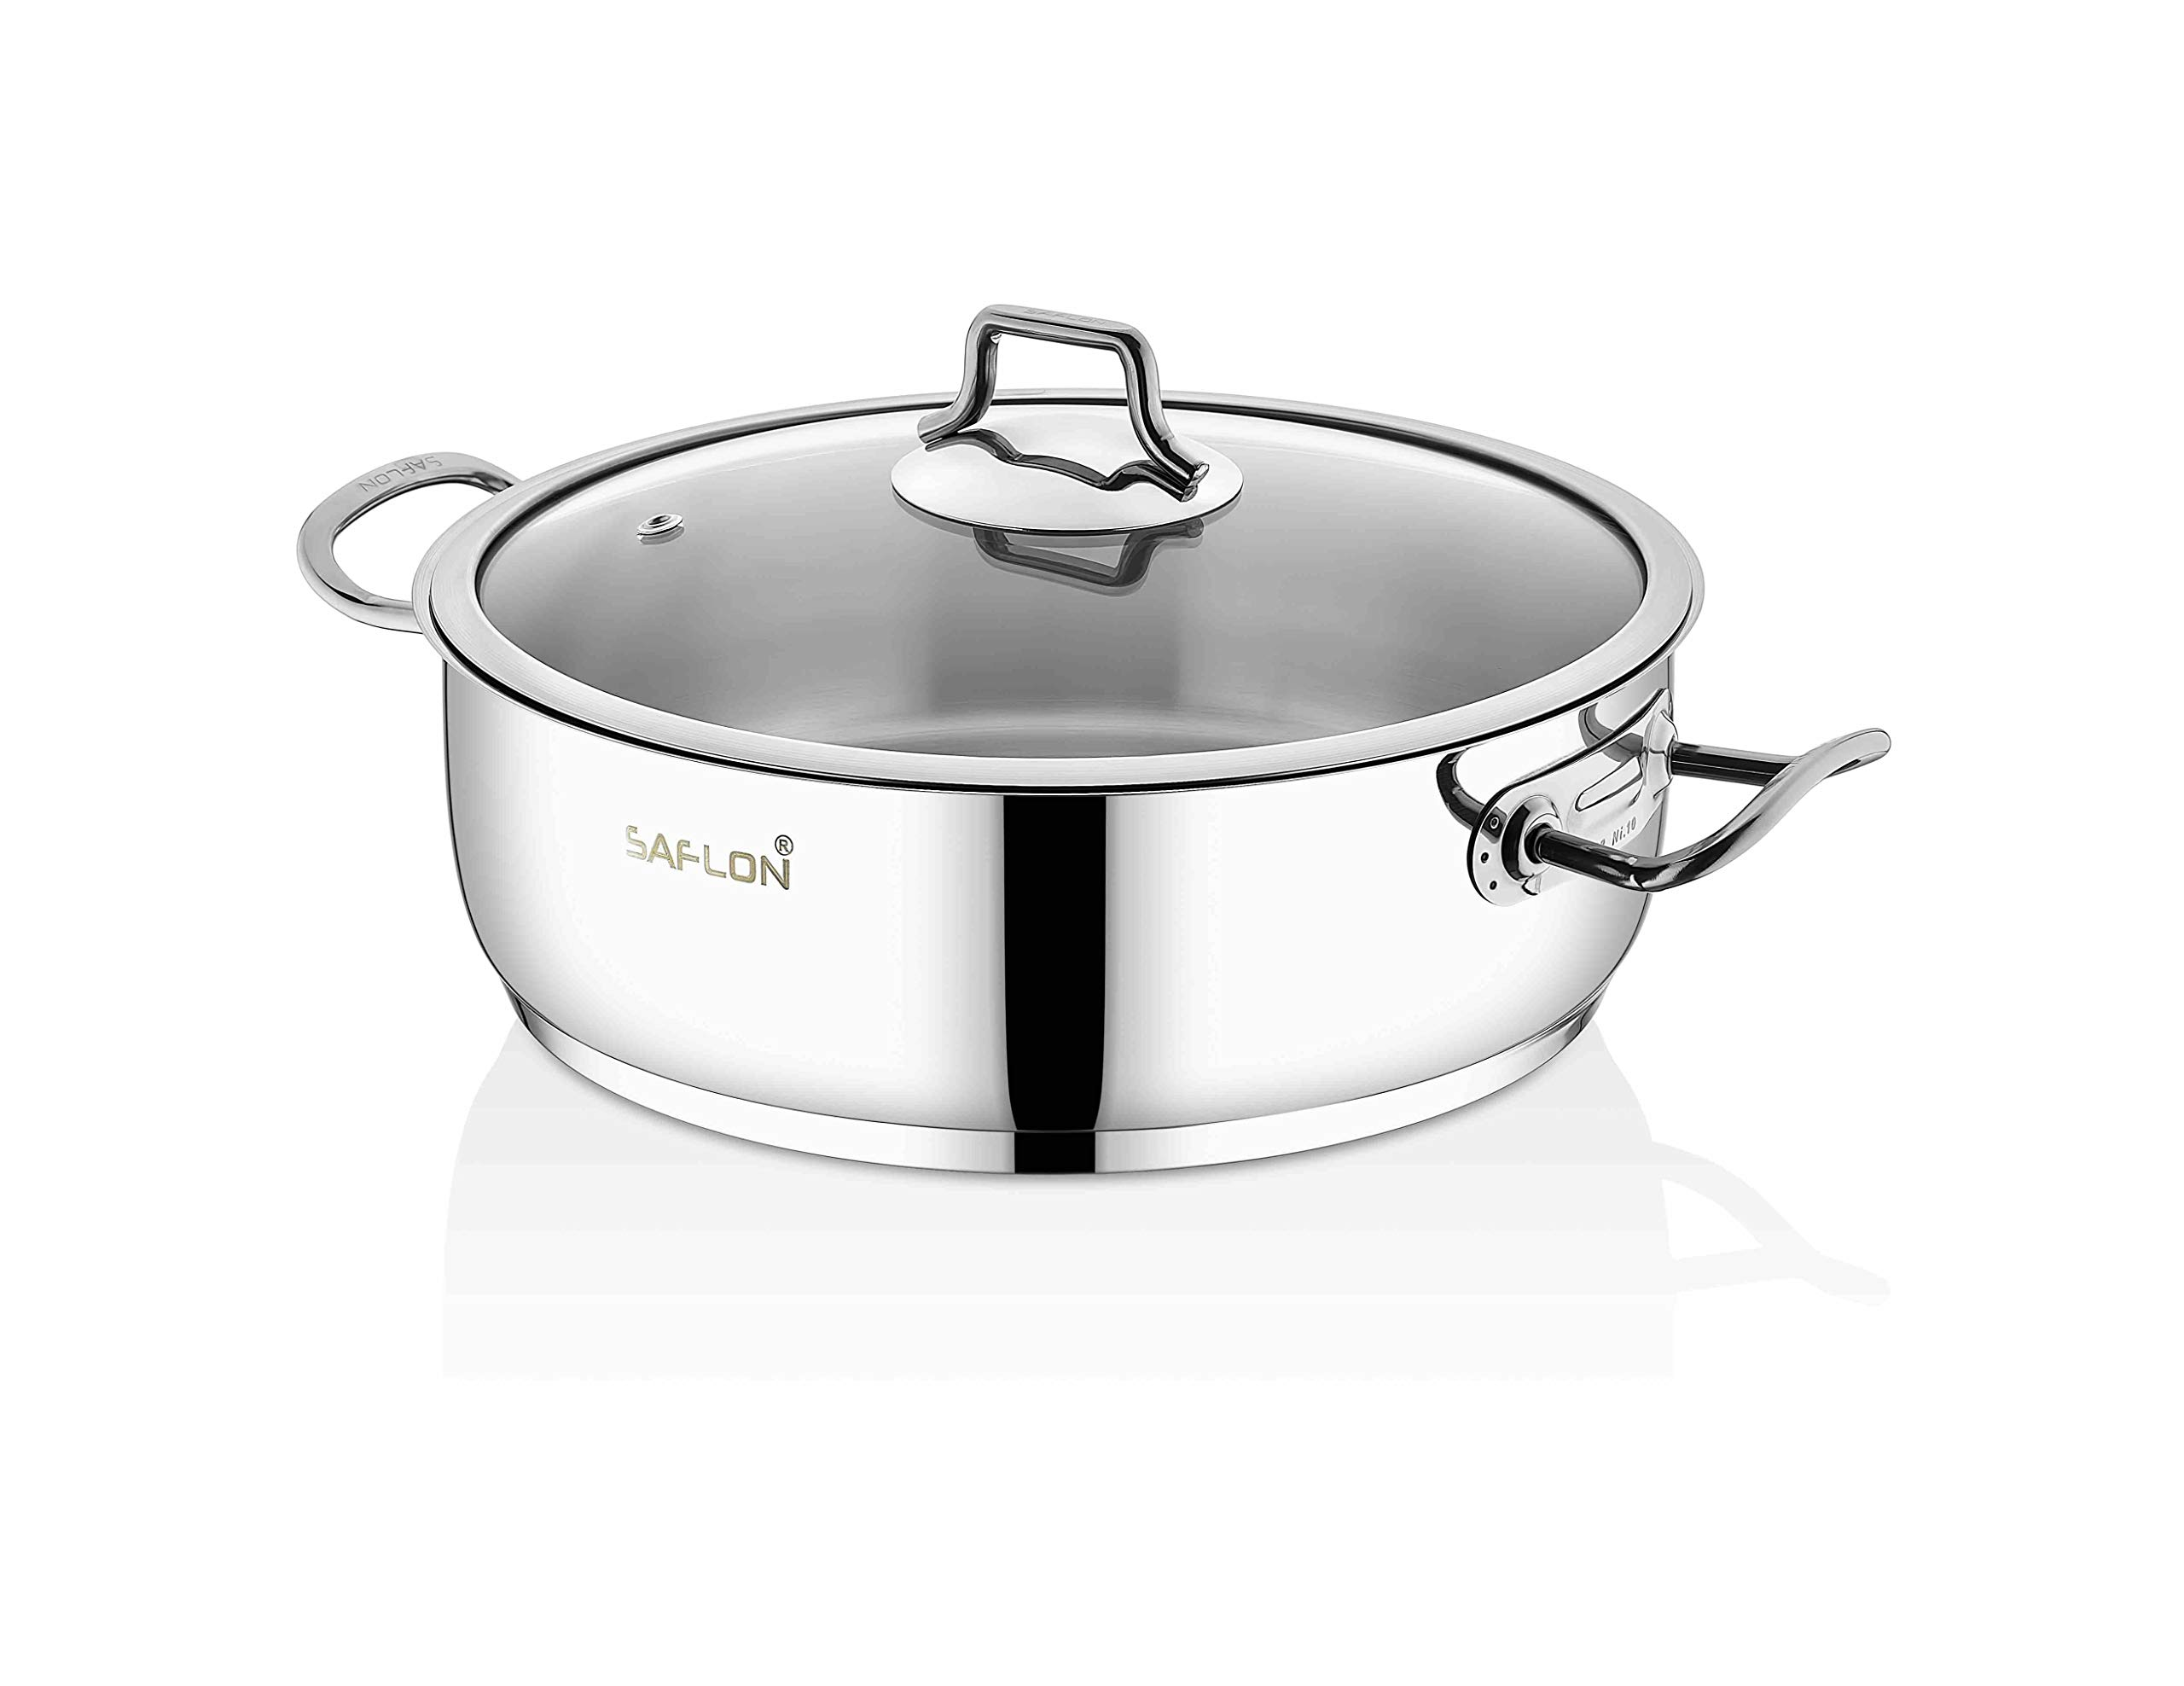 Saflon Stainless Steel Tri-Ply Capsulated Bottom 4 Quart Saute Pot with Glass Lid, Induction Ready, Oven and Dishwasher Safe by SAFLON